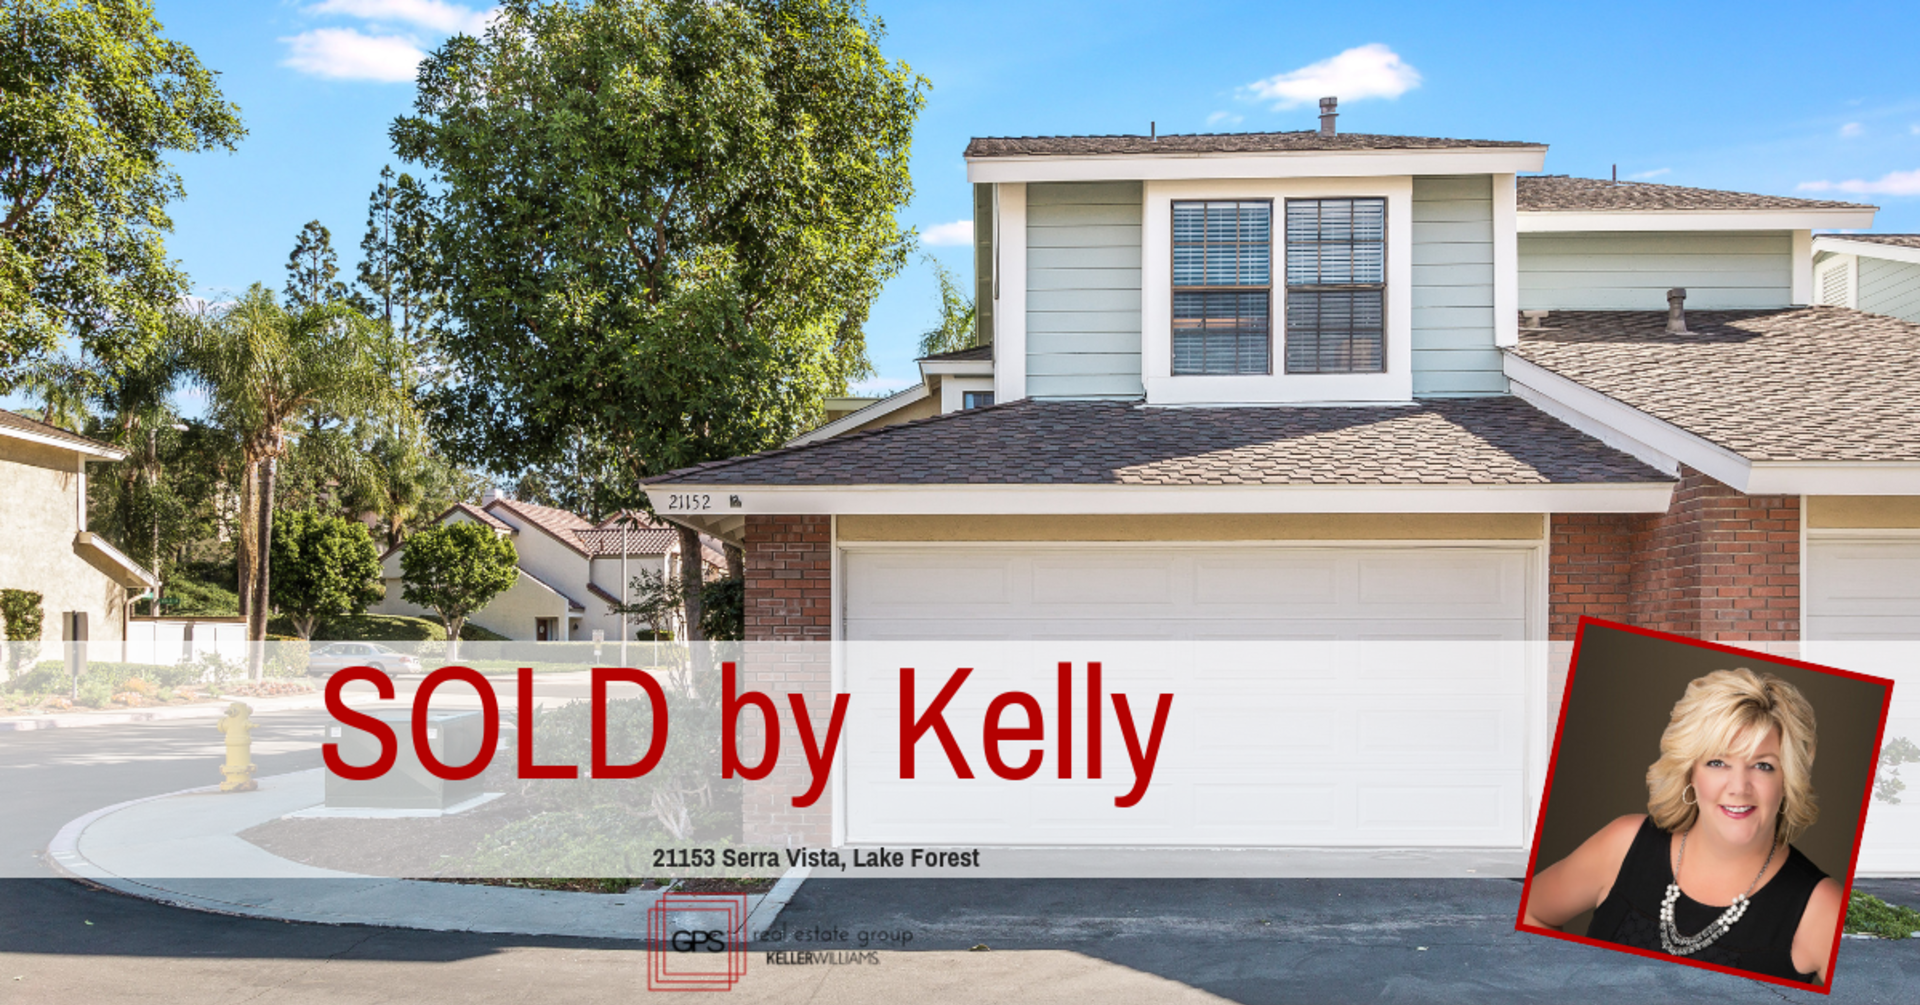 The Perfect Starter Home Just Sold by Kelly